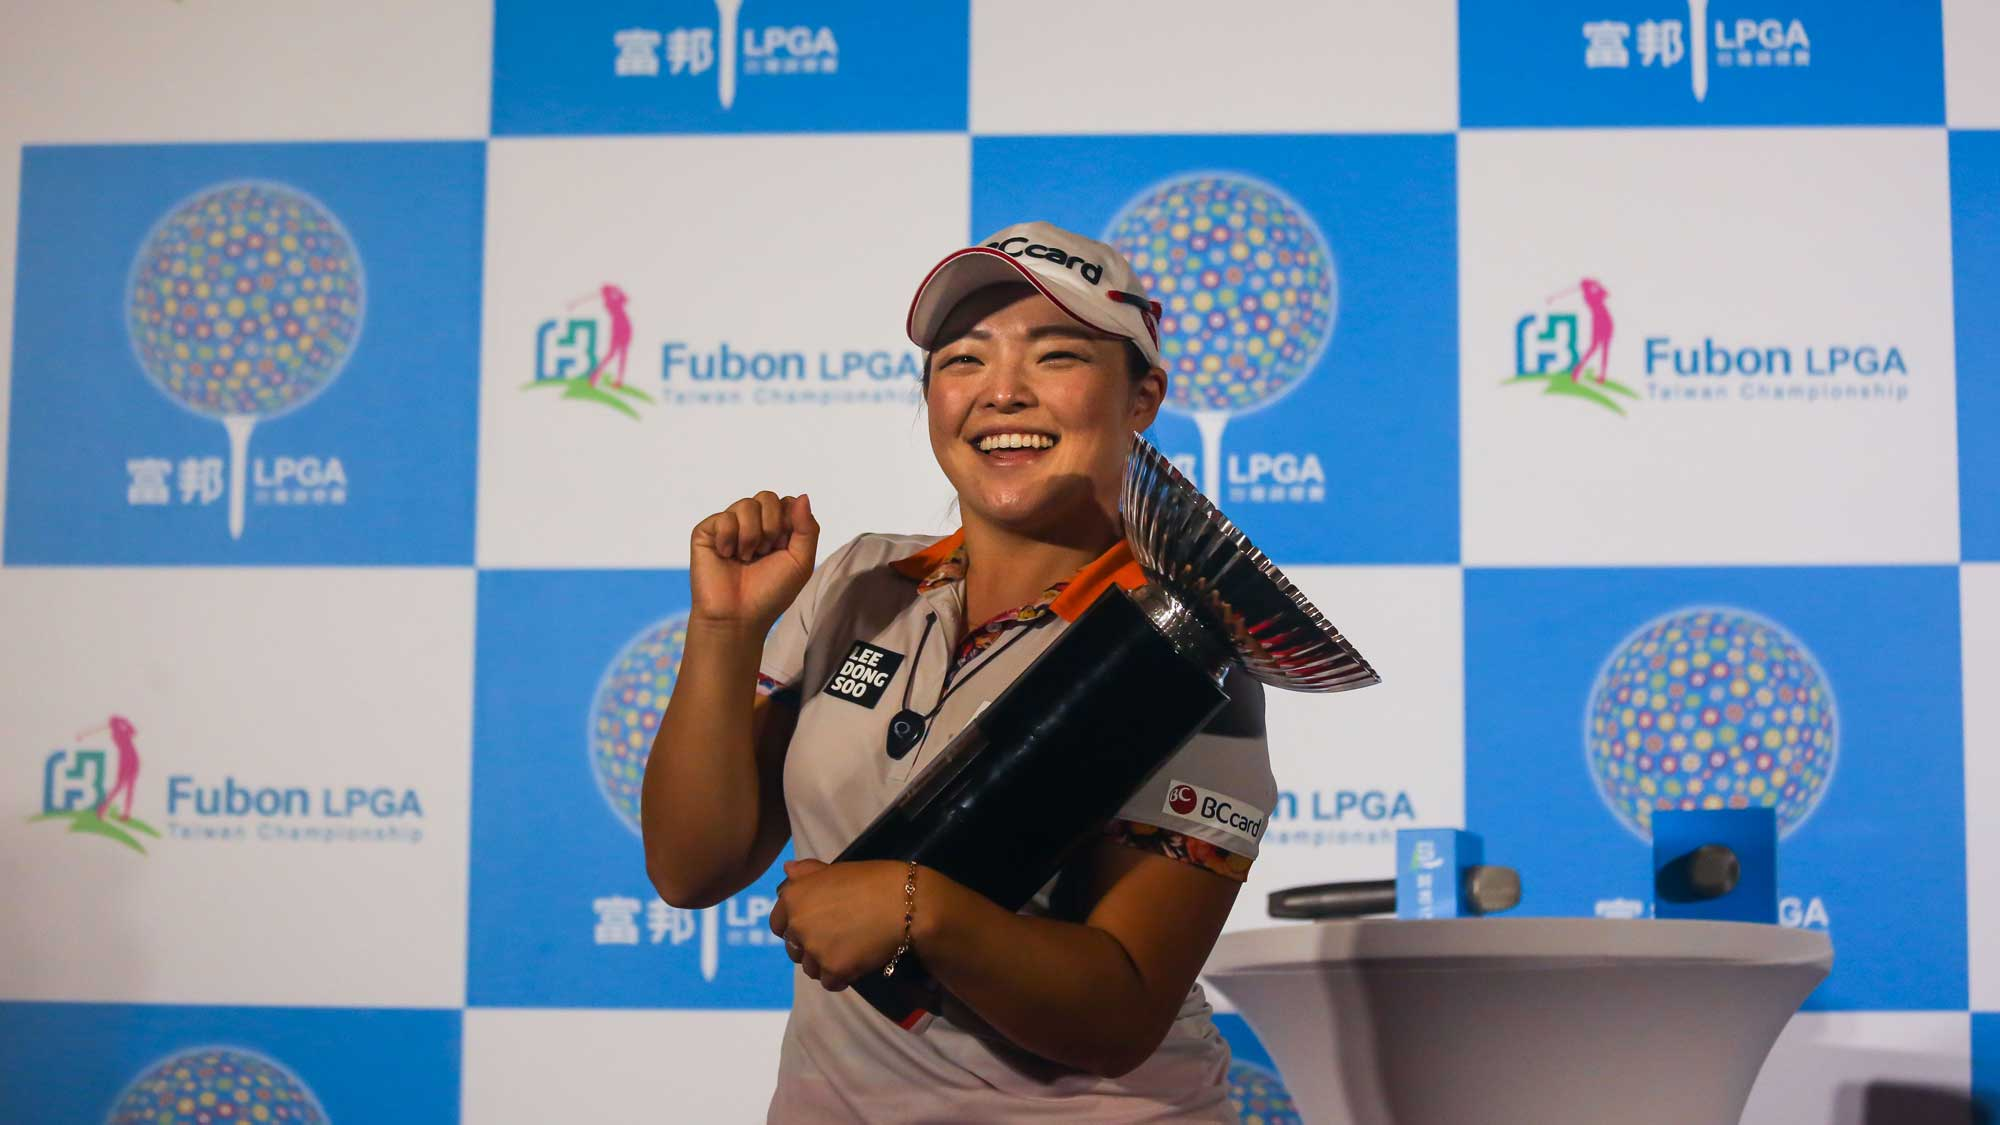 Ha Na Jang holds the trophy after winning the competition in the Fubon Taiwan LPGA Championship